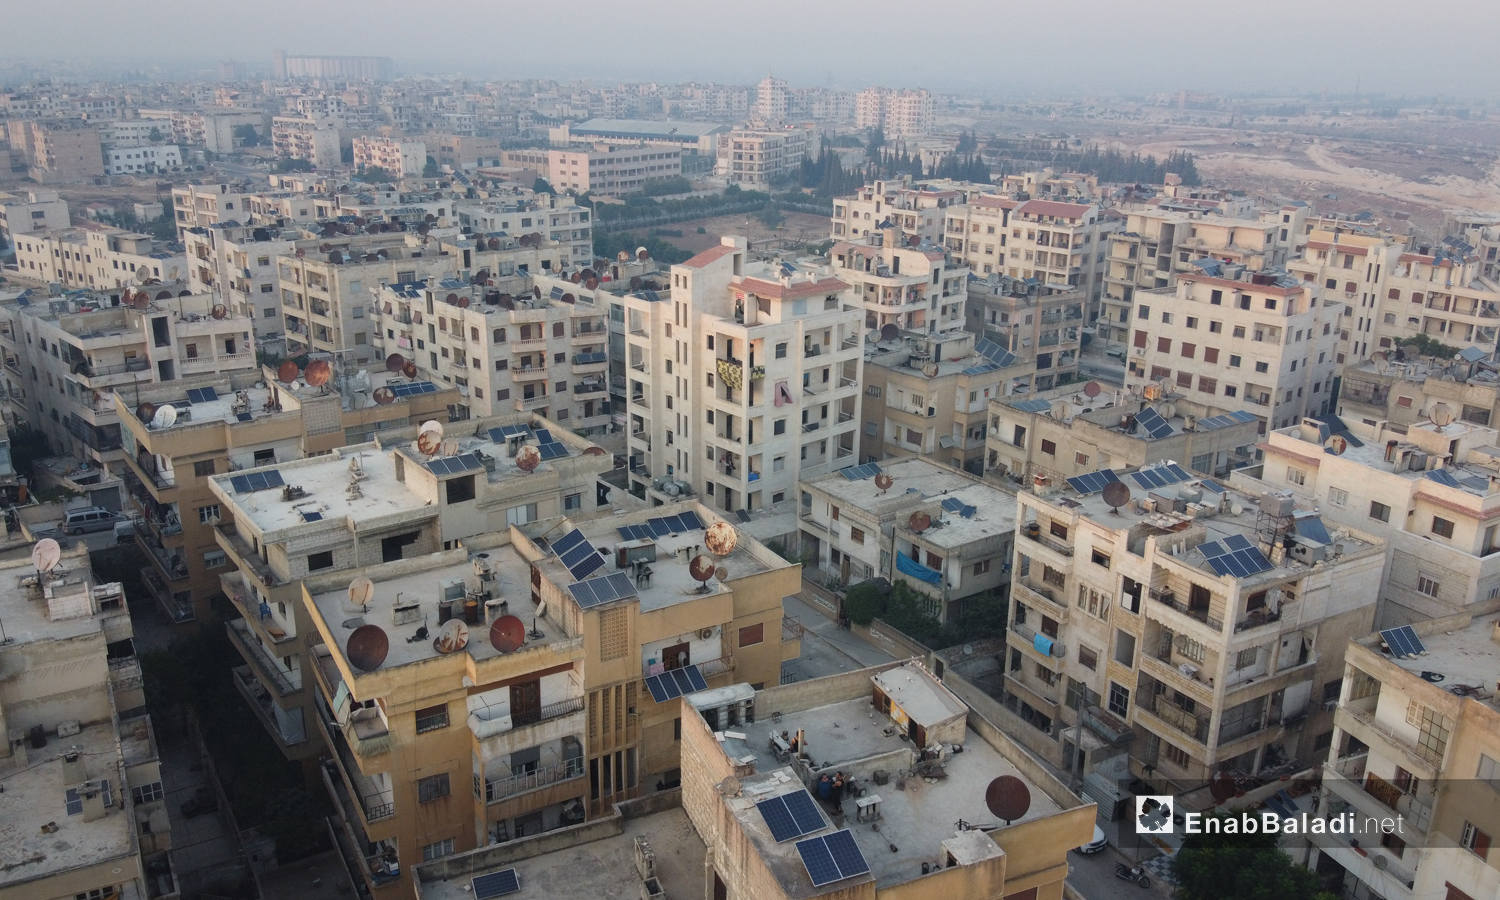 The organized streets and buildings in the city of Idlib- 03 September 2020 (Enab Baladi / Yousef Ghuraibi)